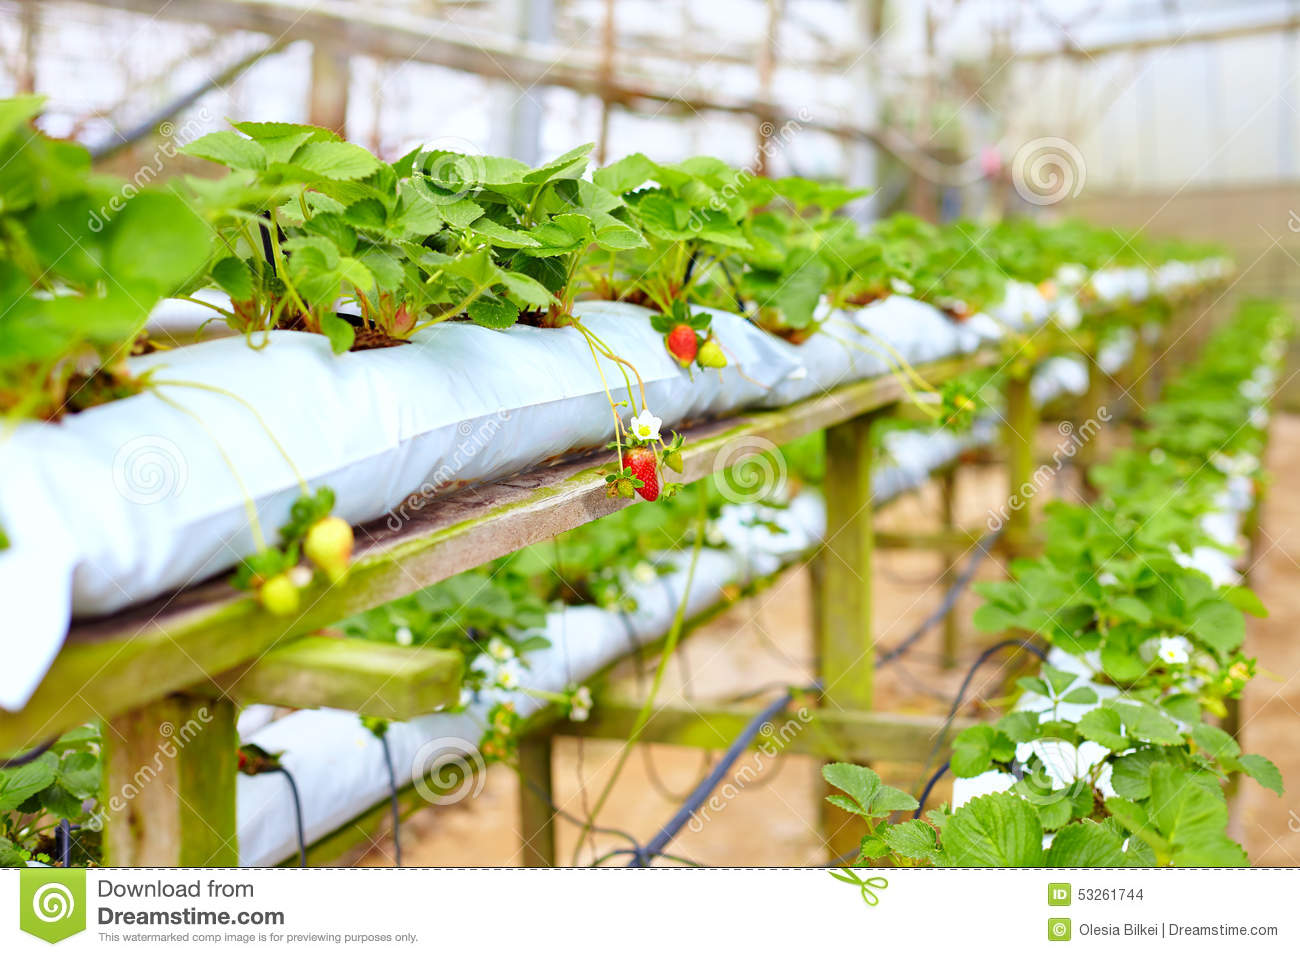 growing strawberries in a greenhouse pdf